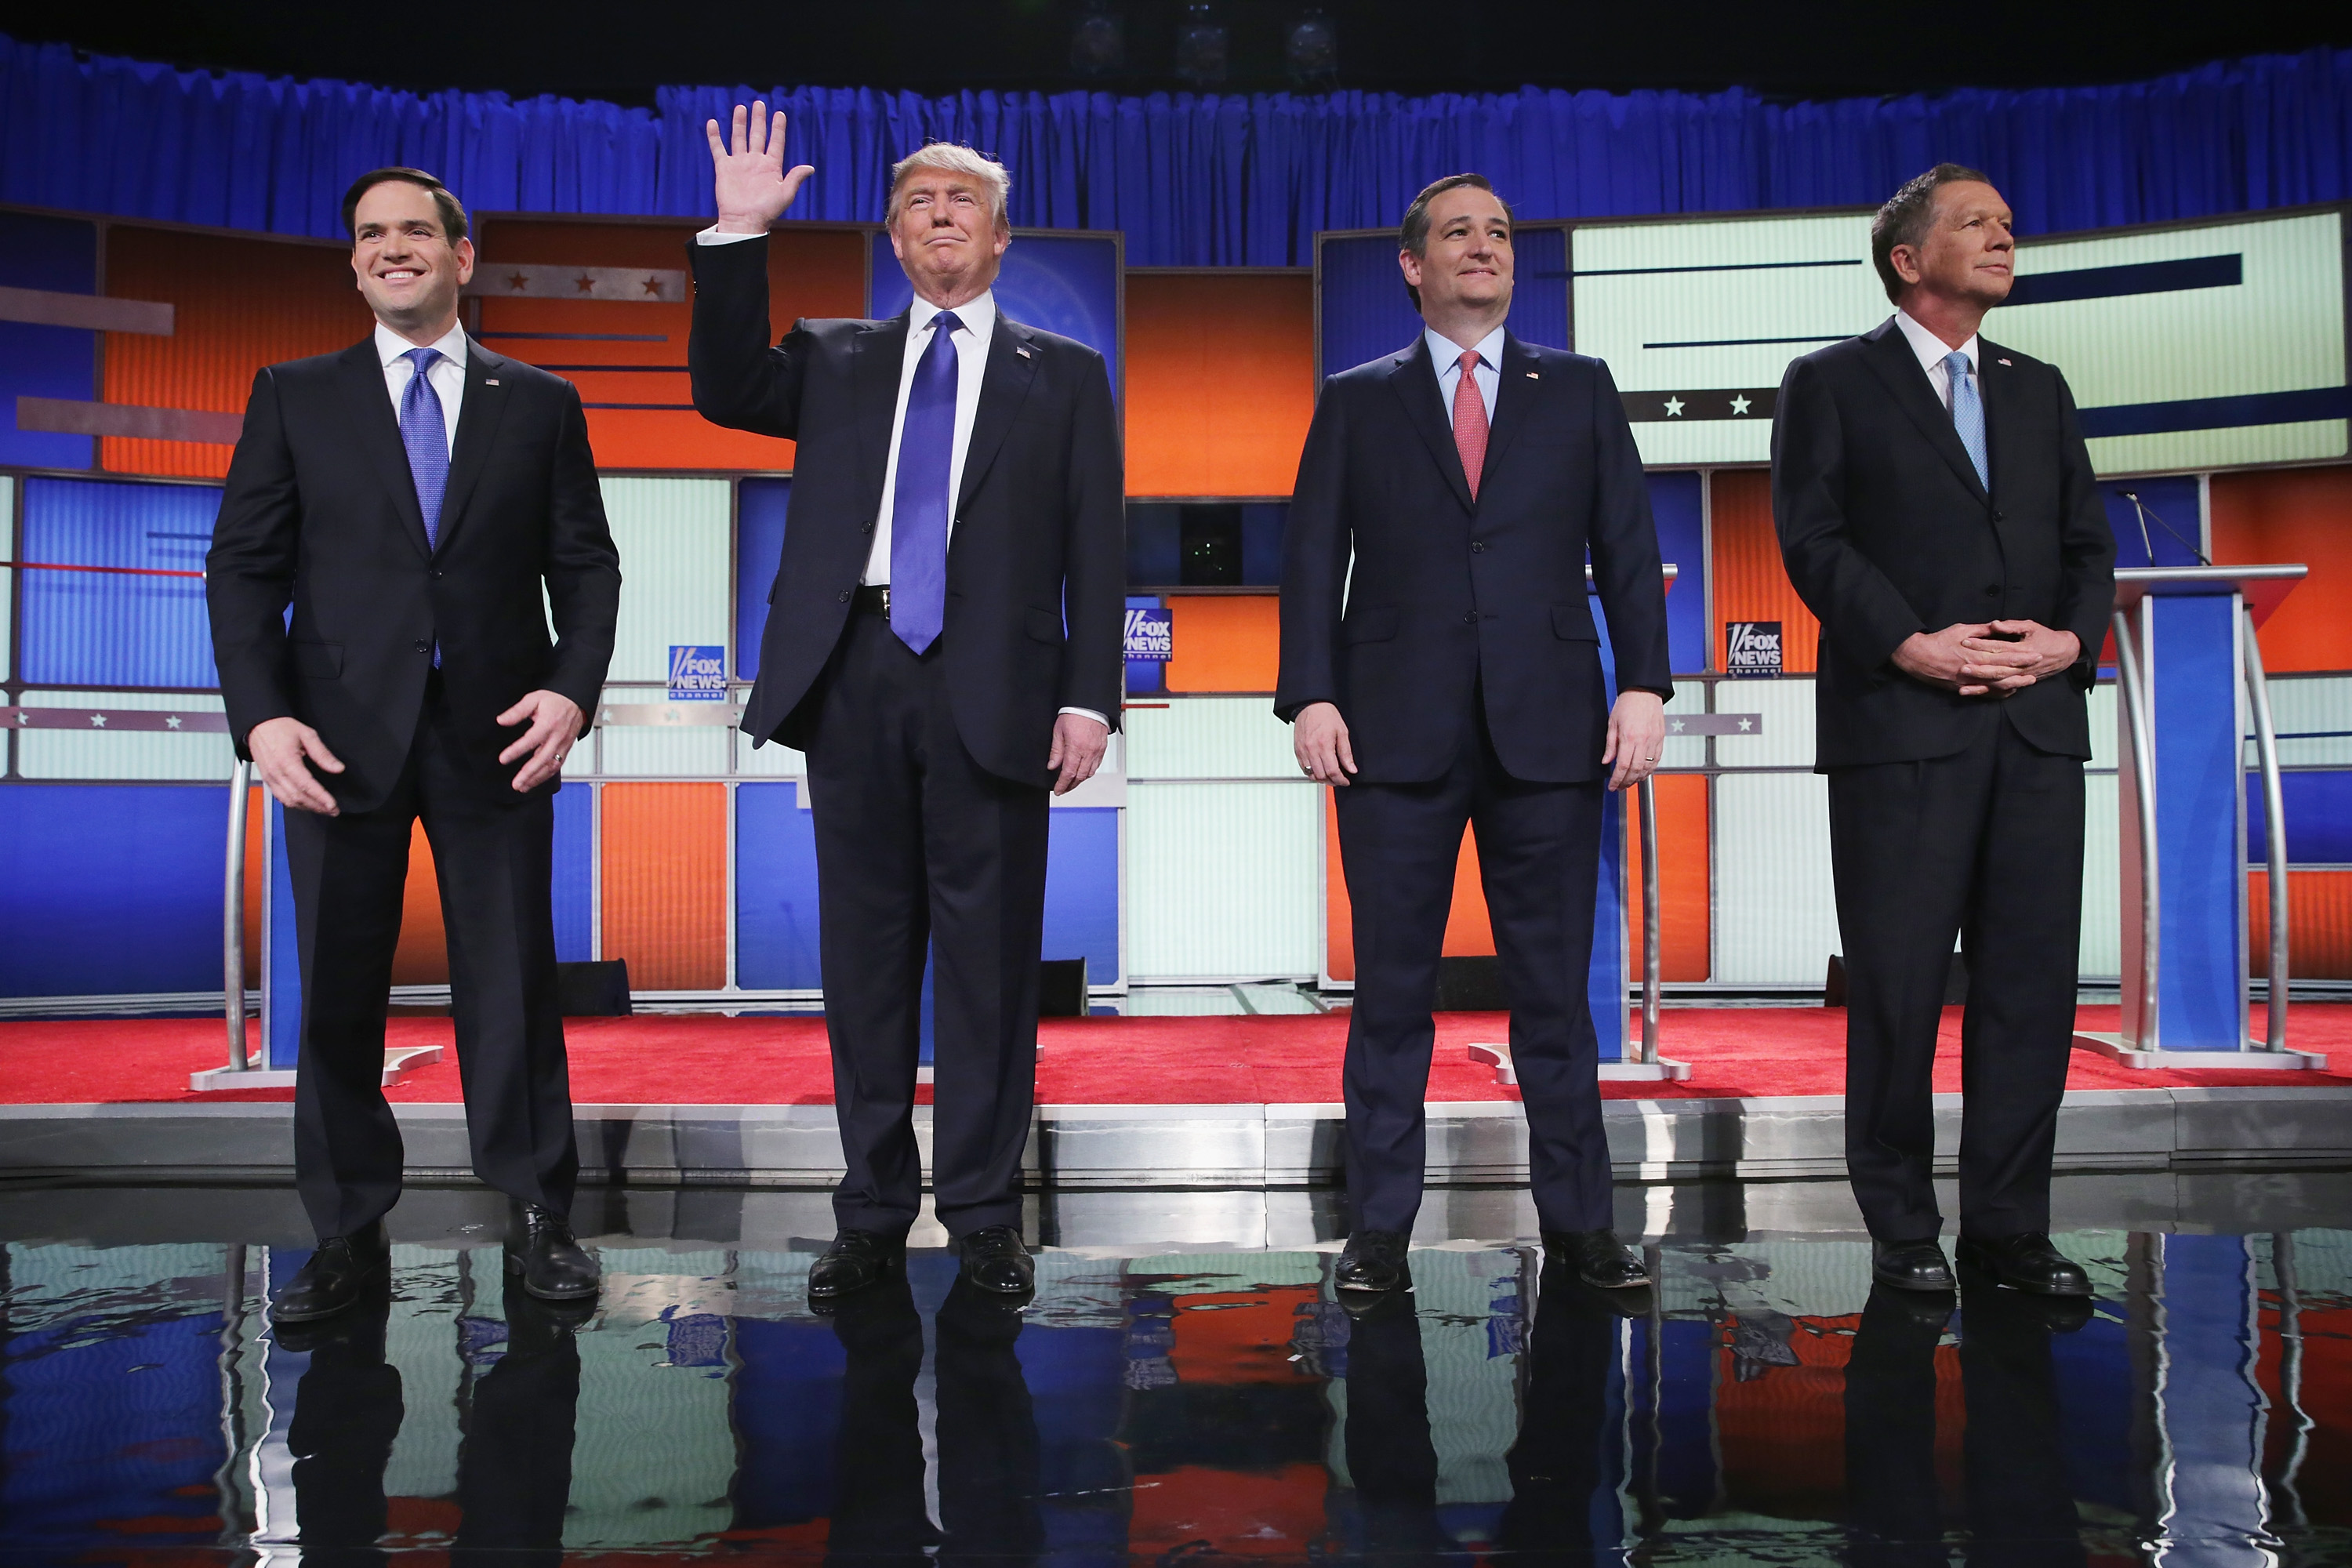 Republican presidential candidates Sen. Marco Rubio (R-FL), Donald Trump, Sen. Ted Cruz (R-TX), and Ohio Gov. John Kasich, participate in a debate sponsored by Fox News on March 3, 2016 in Detroit, Michigan.